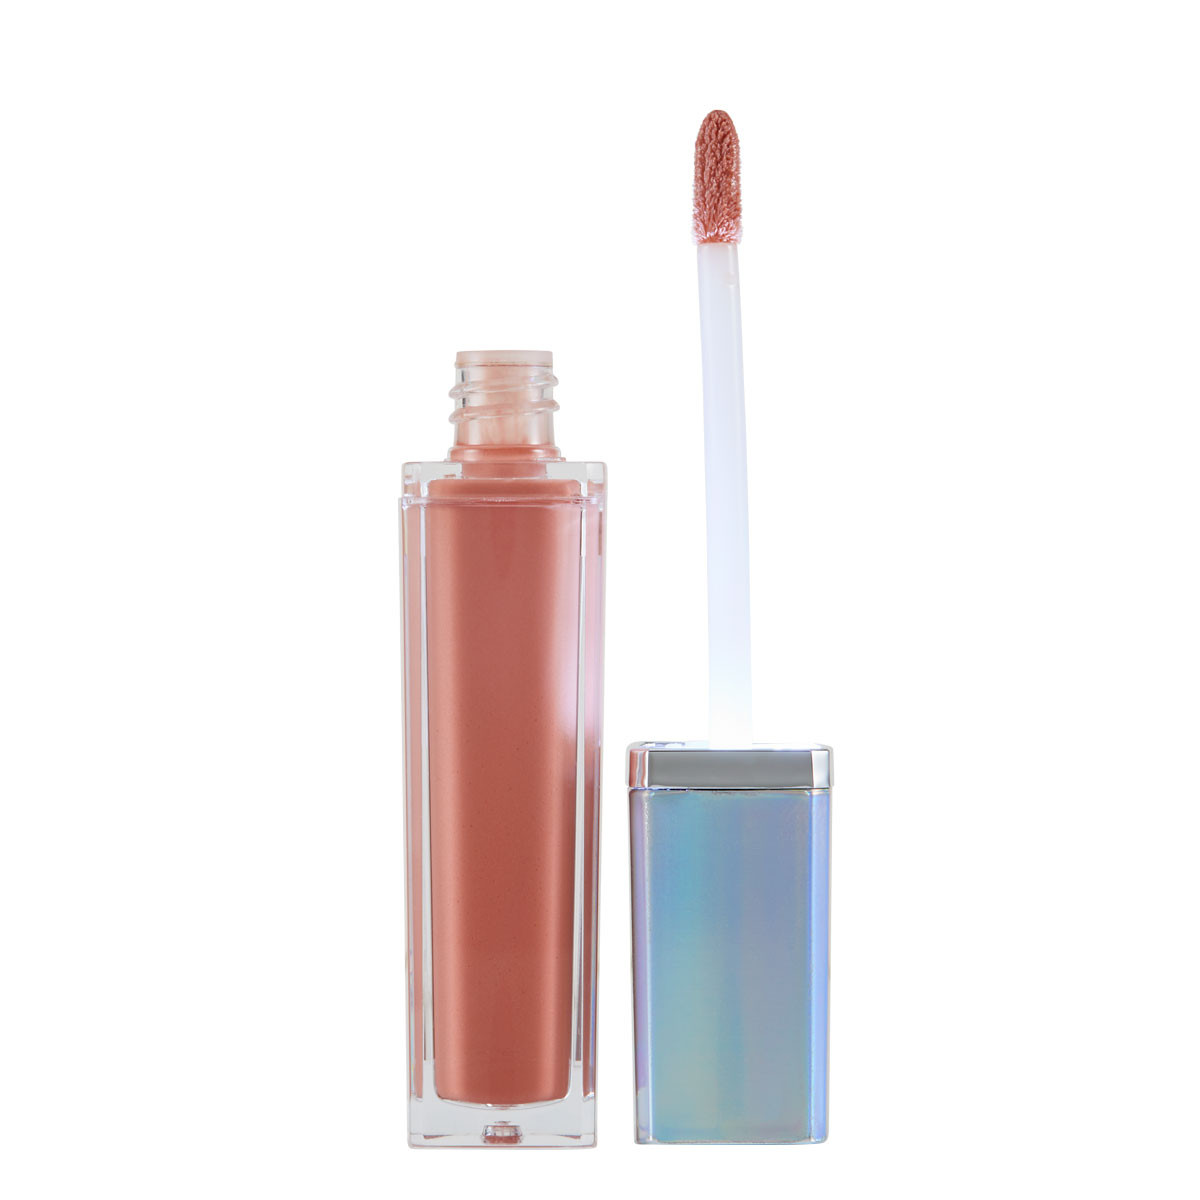 Out of the Blue Light Up High Shine Lip Gloss